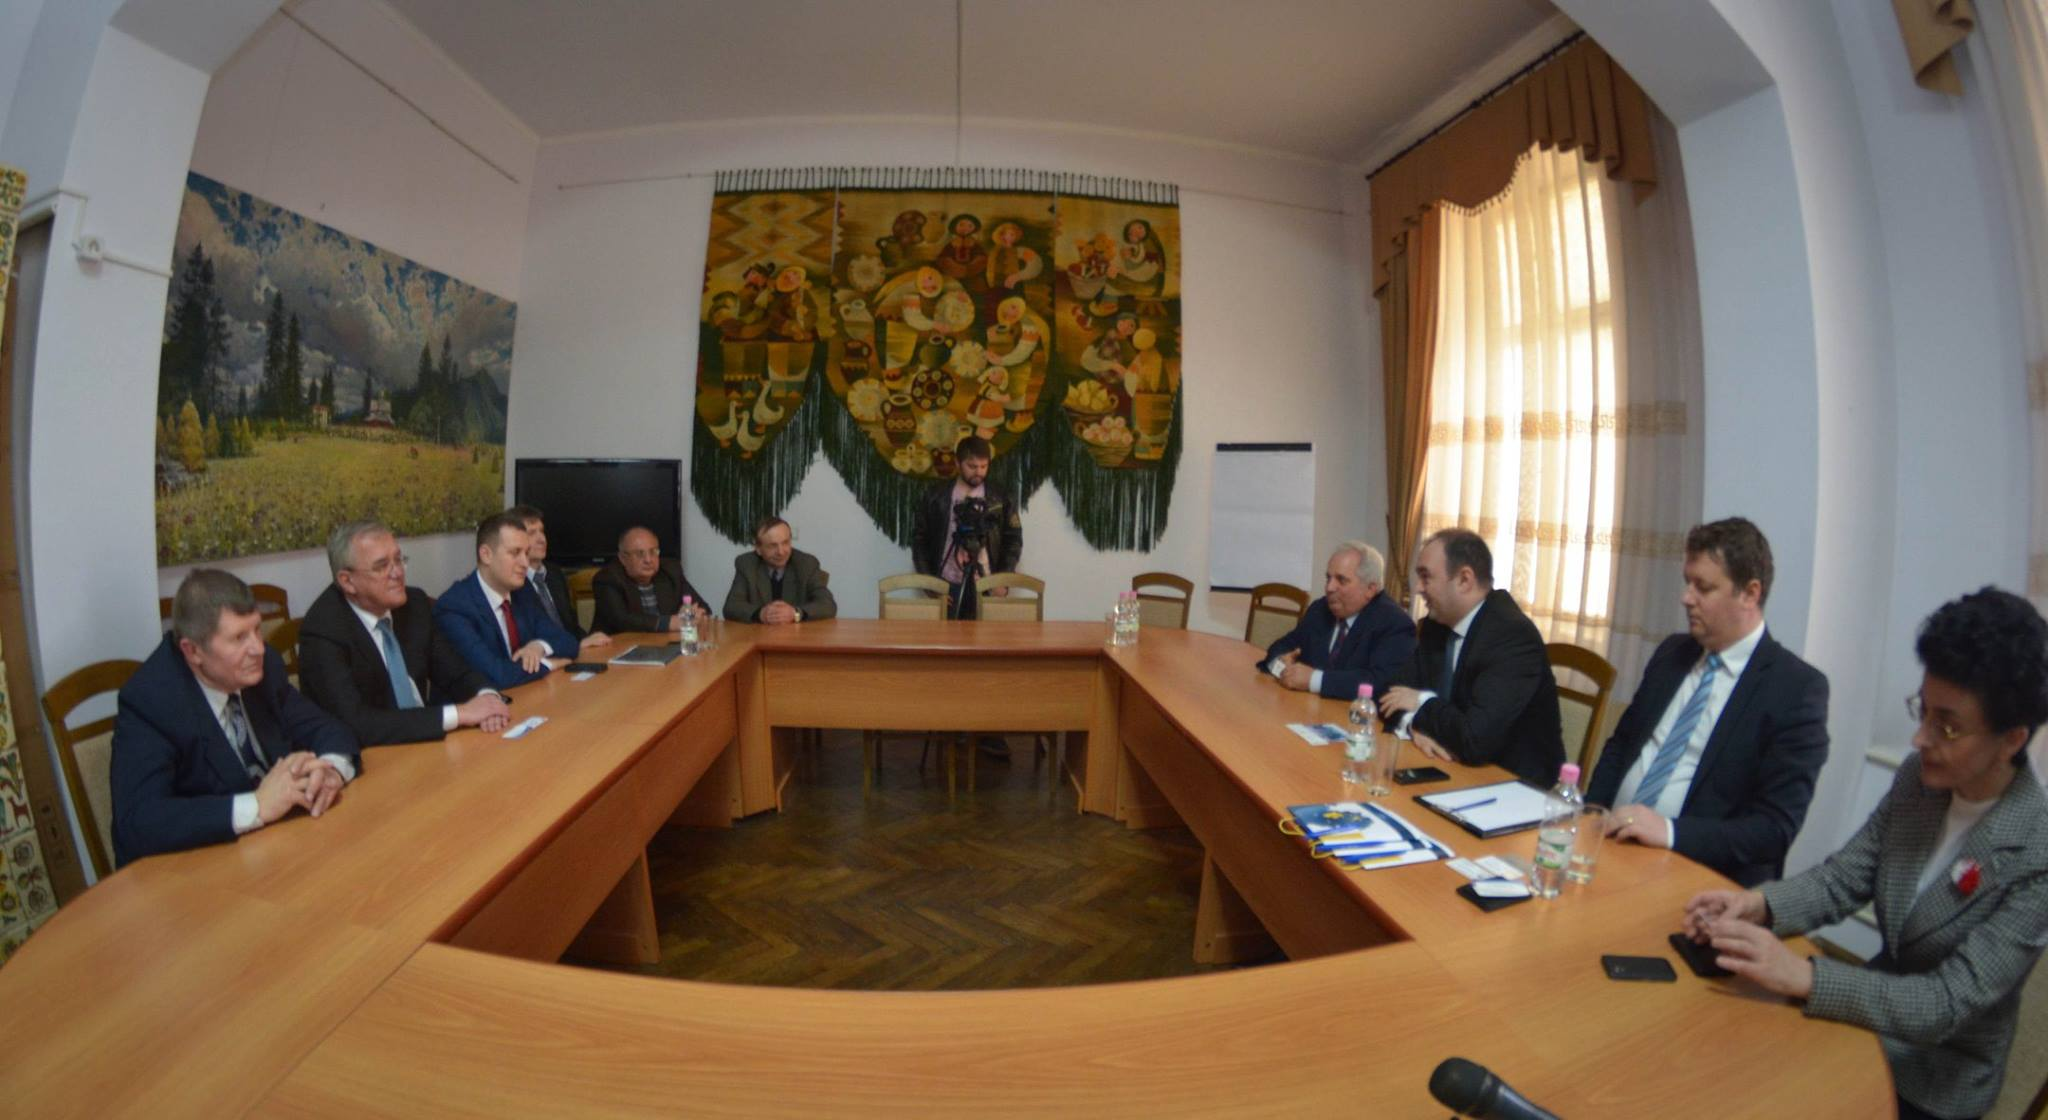 "<a class=""amazingslider-posttitle-link"" href=""https://www.euroregiune.org/en/visit-ivano-frankivsk-ukraine-25-26-march-2015/"" target=""_self"">Visit at Ivano-Frankivsk, Ukraine 25-26 March 2015</a>"